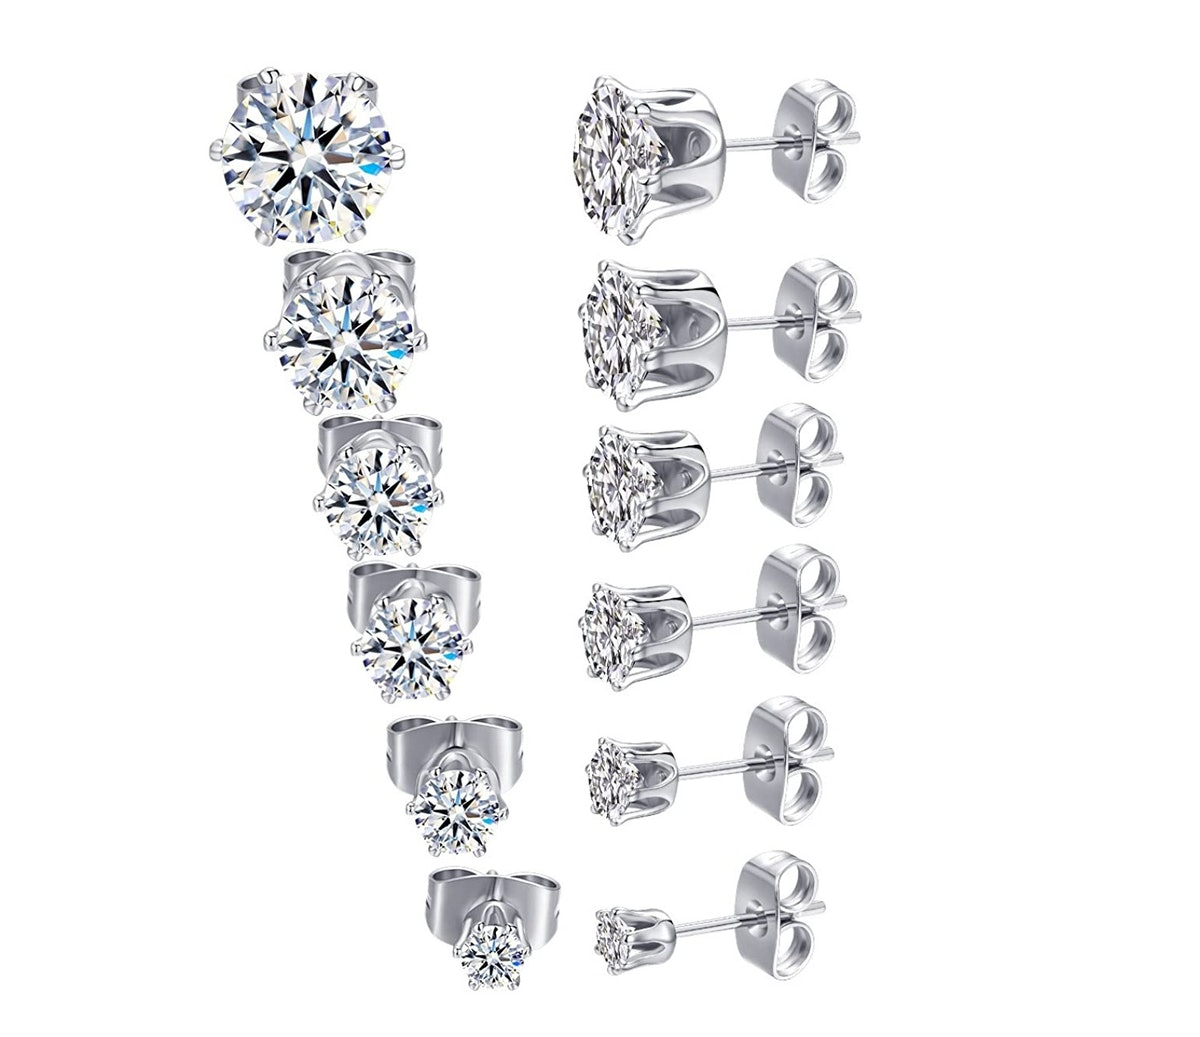 MDFUN White Gold-Plated Stud Earrings (6 Pairs)